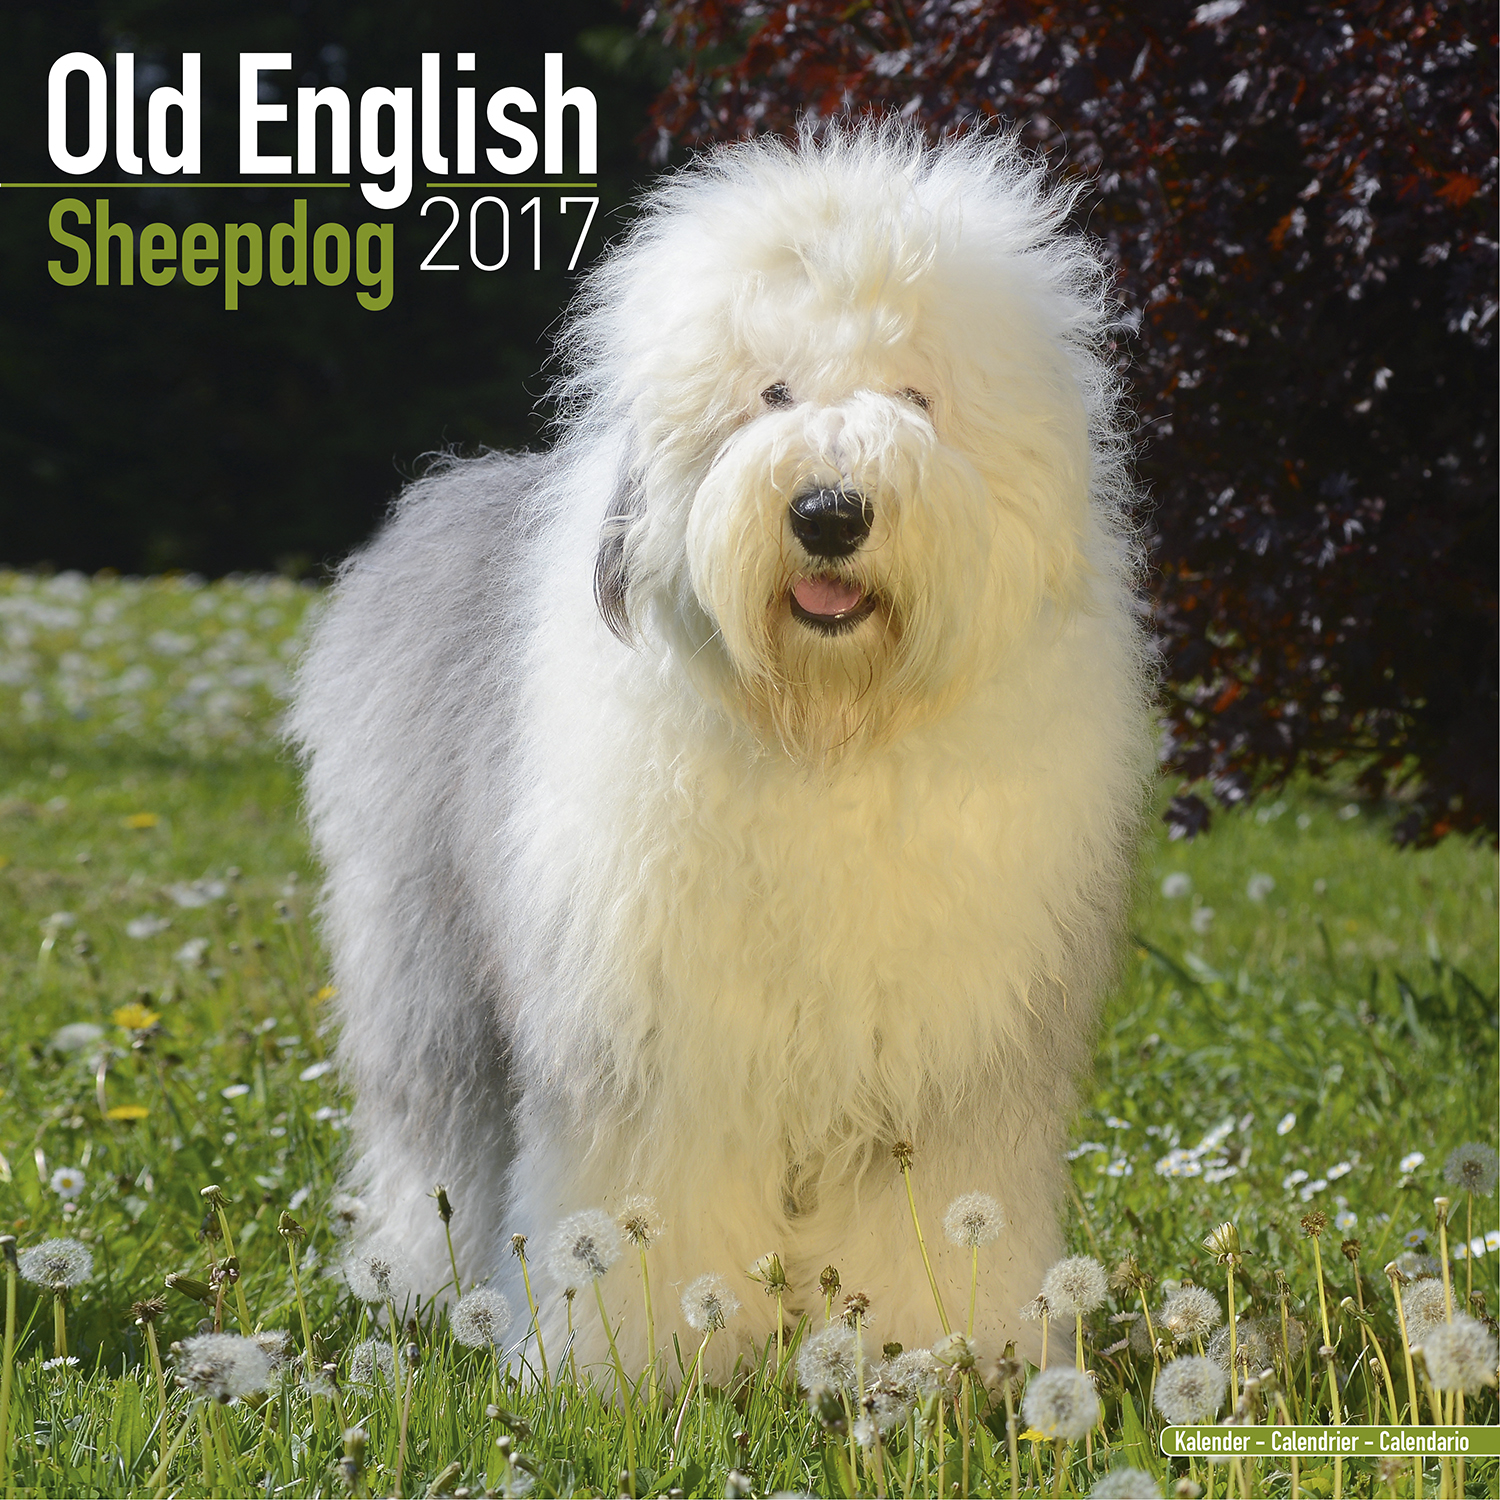 Old English Sheepdog Calendar 2017 10057 17 Dog Breeds